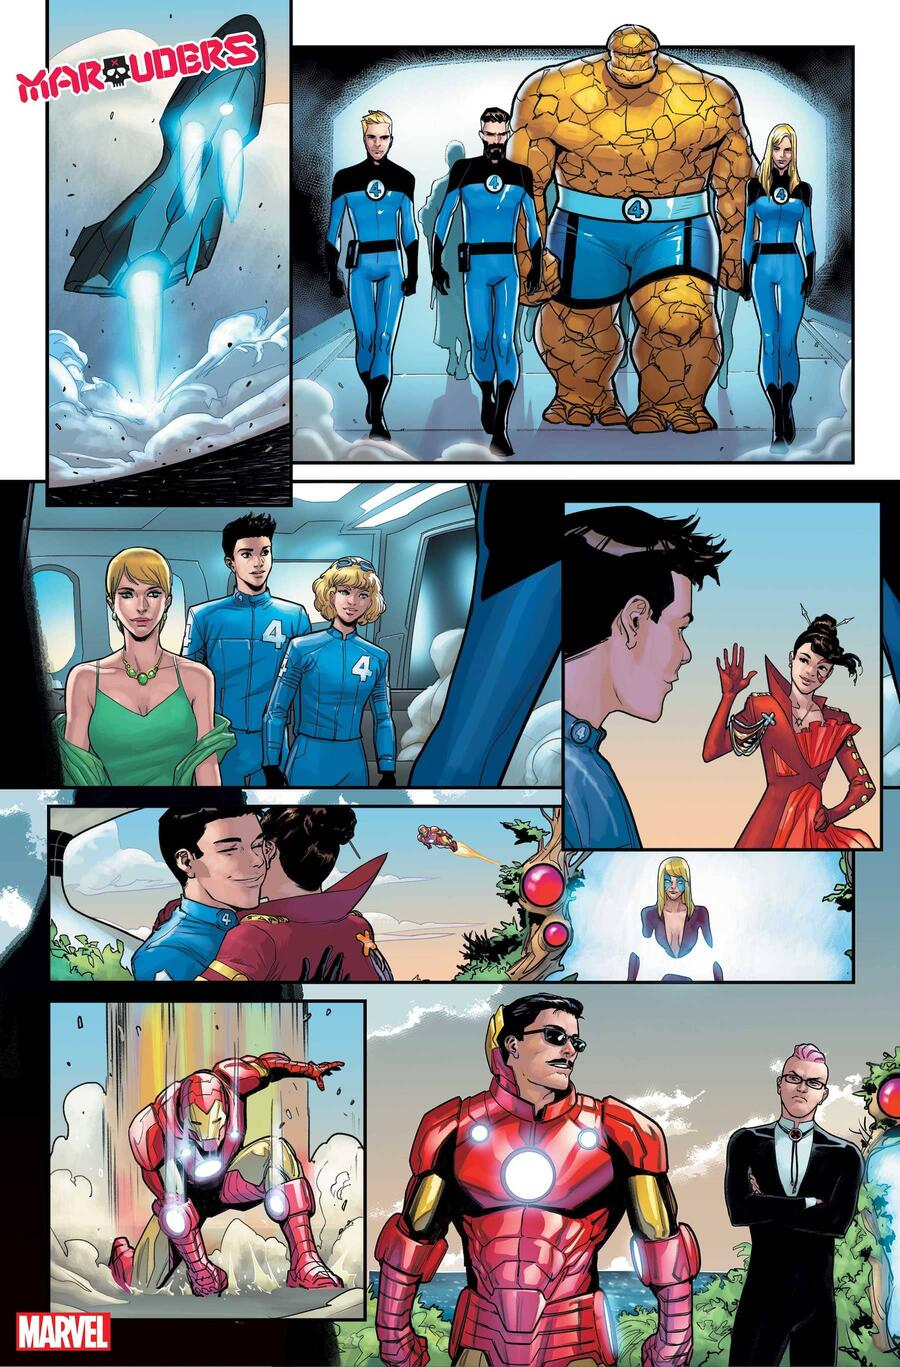 MARAUDERS #21 preview art by Matteo Lolli with colors by Edgar Delgado